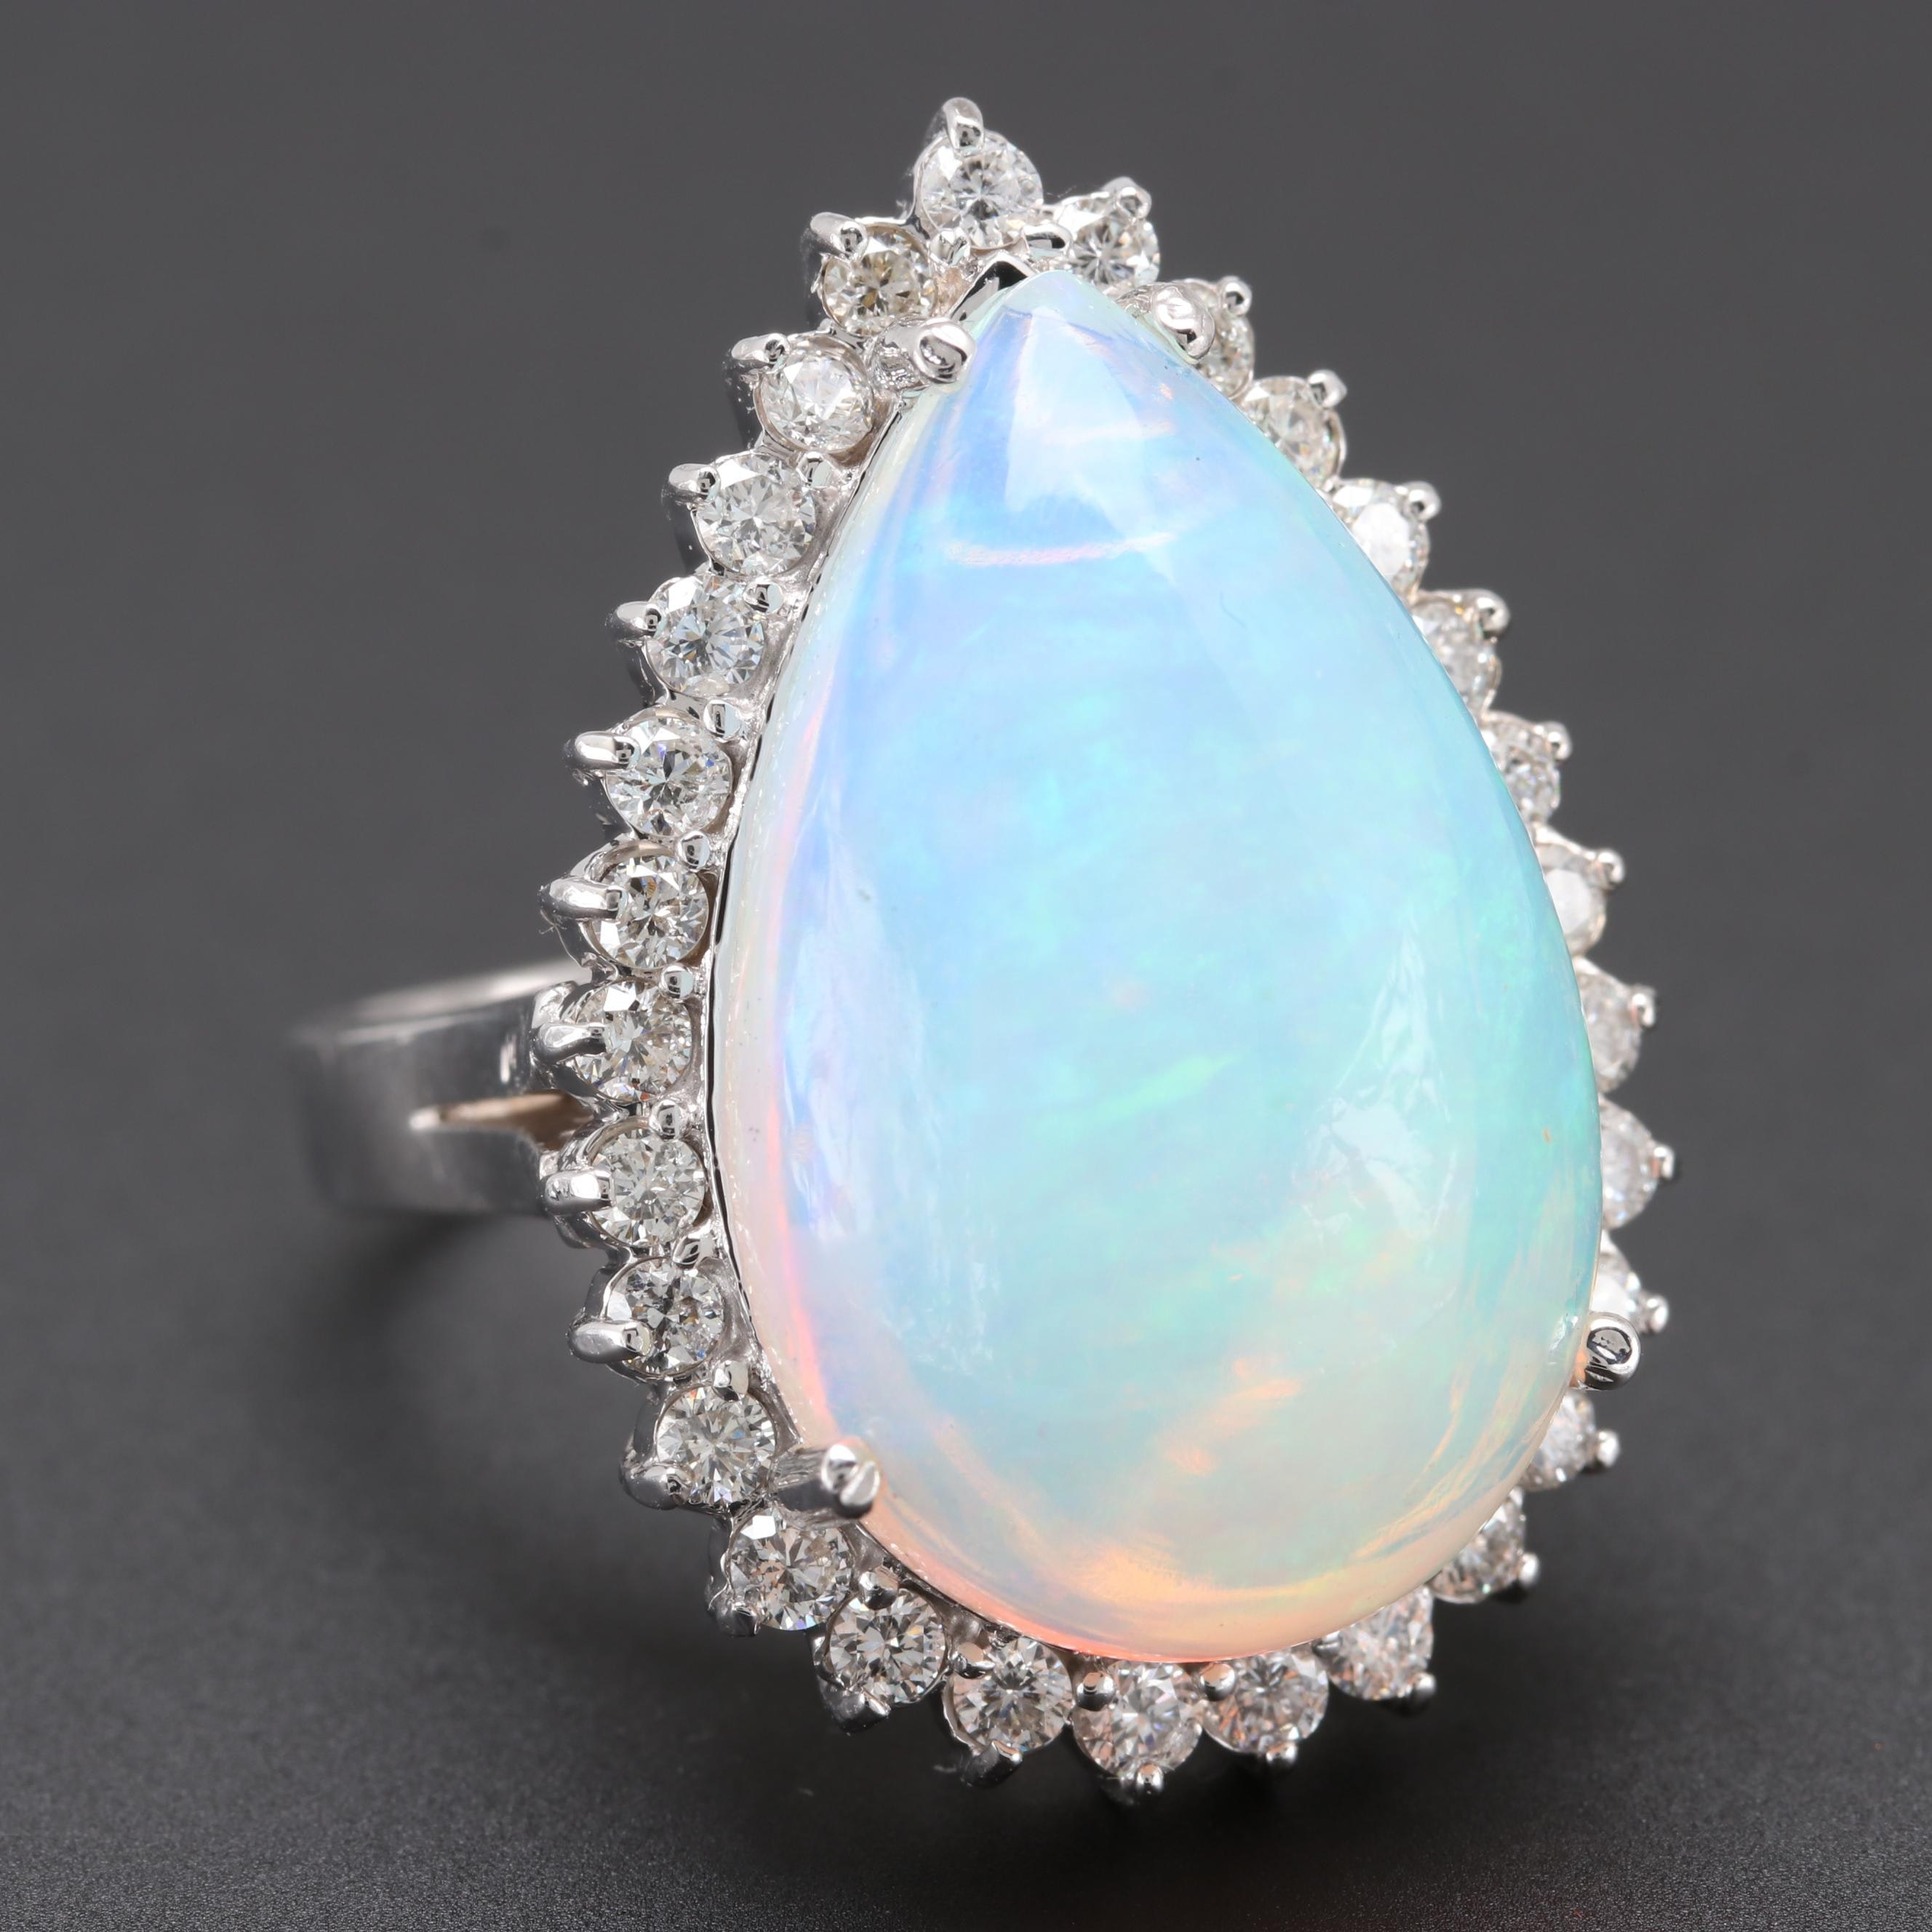 18K White Gold 10.95 CT Opal and Diamond Ring